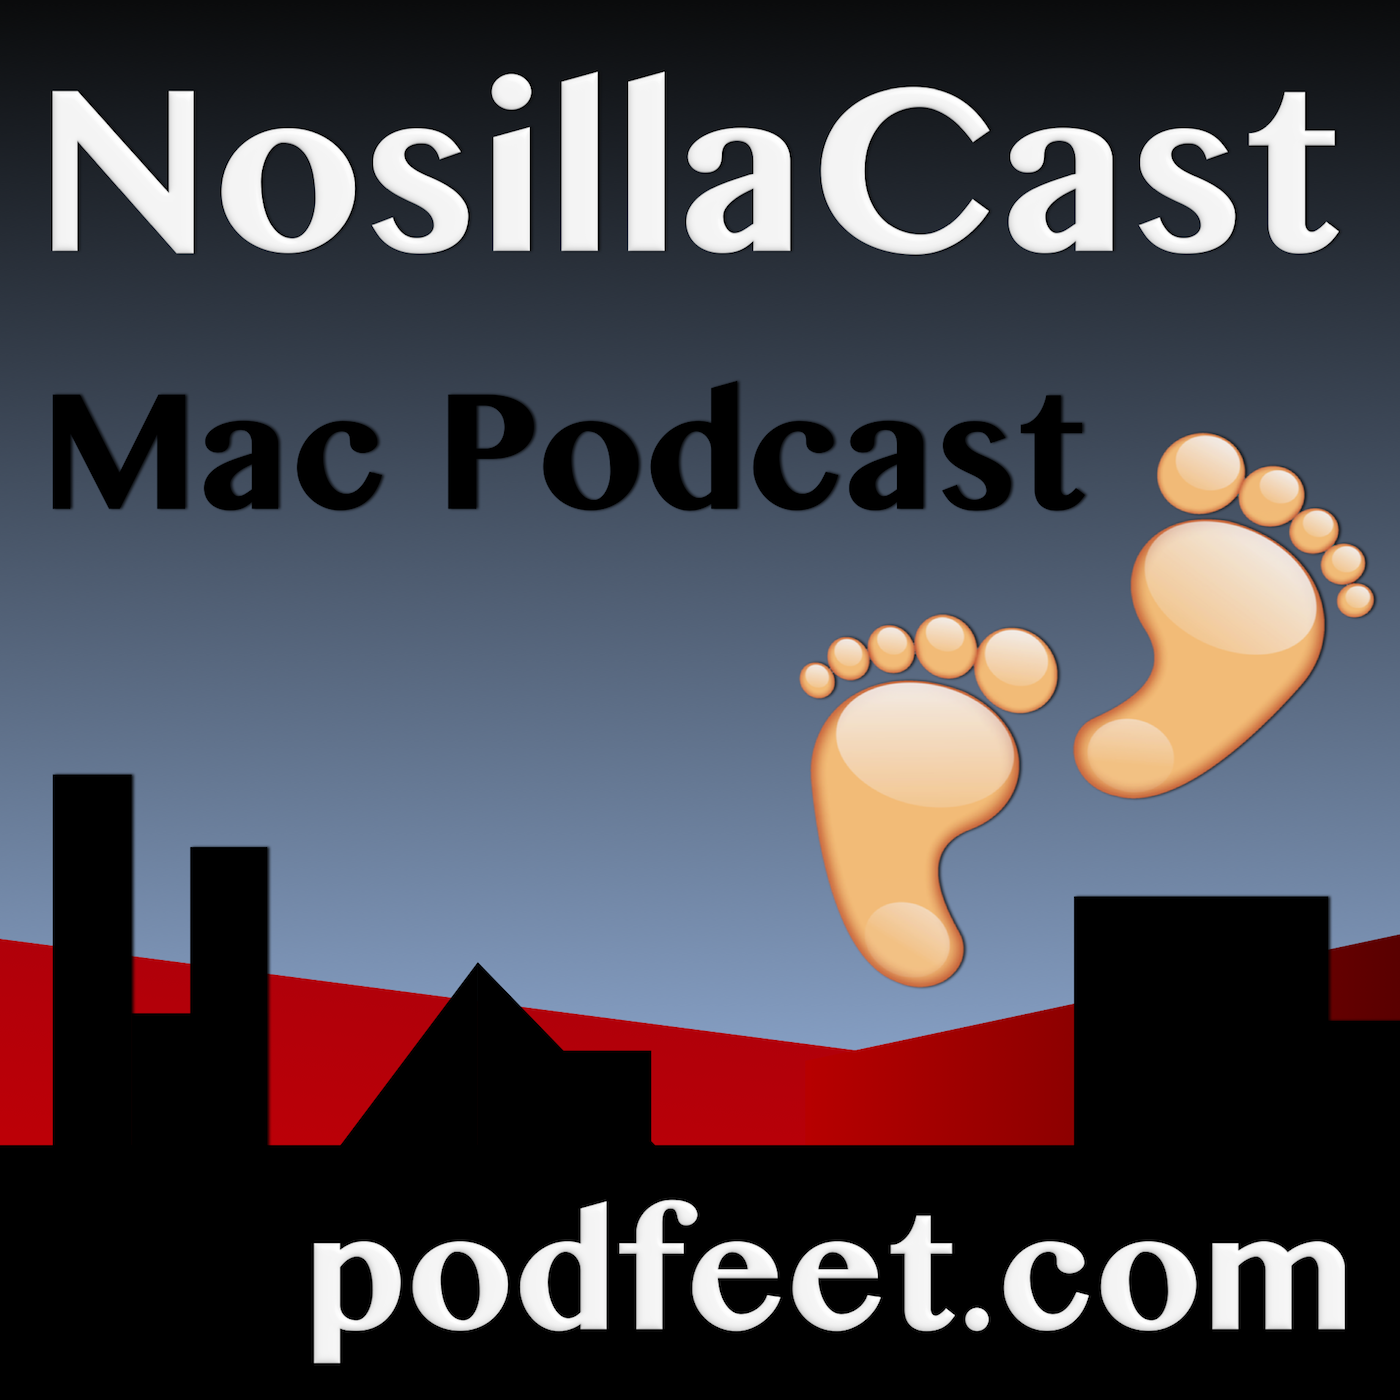 iPodder org :: NosillaCast Mac Podcast